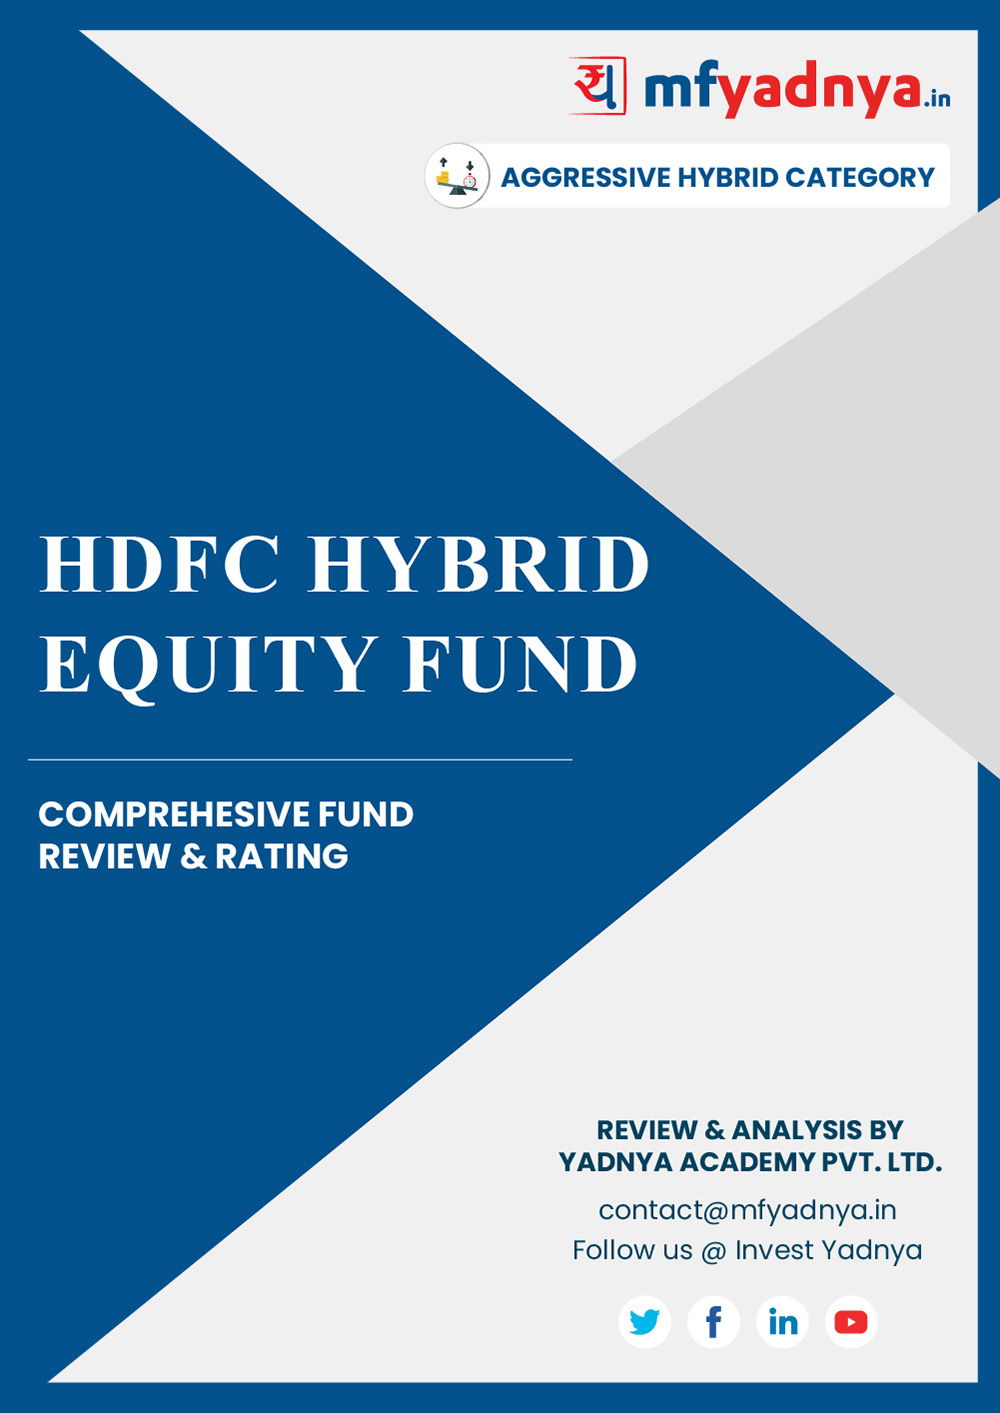 This e-book offers a comprehensive mutual fund review of HDFC Equity Advantage Fund for hybrid category. It reviews the fund's return, ratio, allocation etc. ✔ Detailed Mutual Fund Analysis ✔ Latest Research Reports